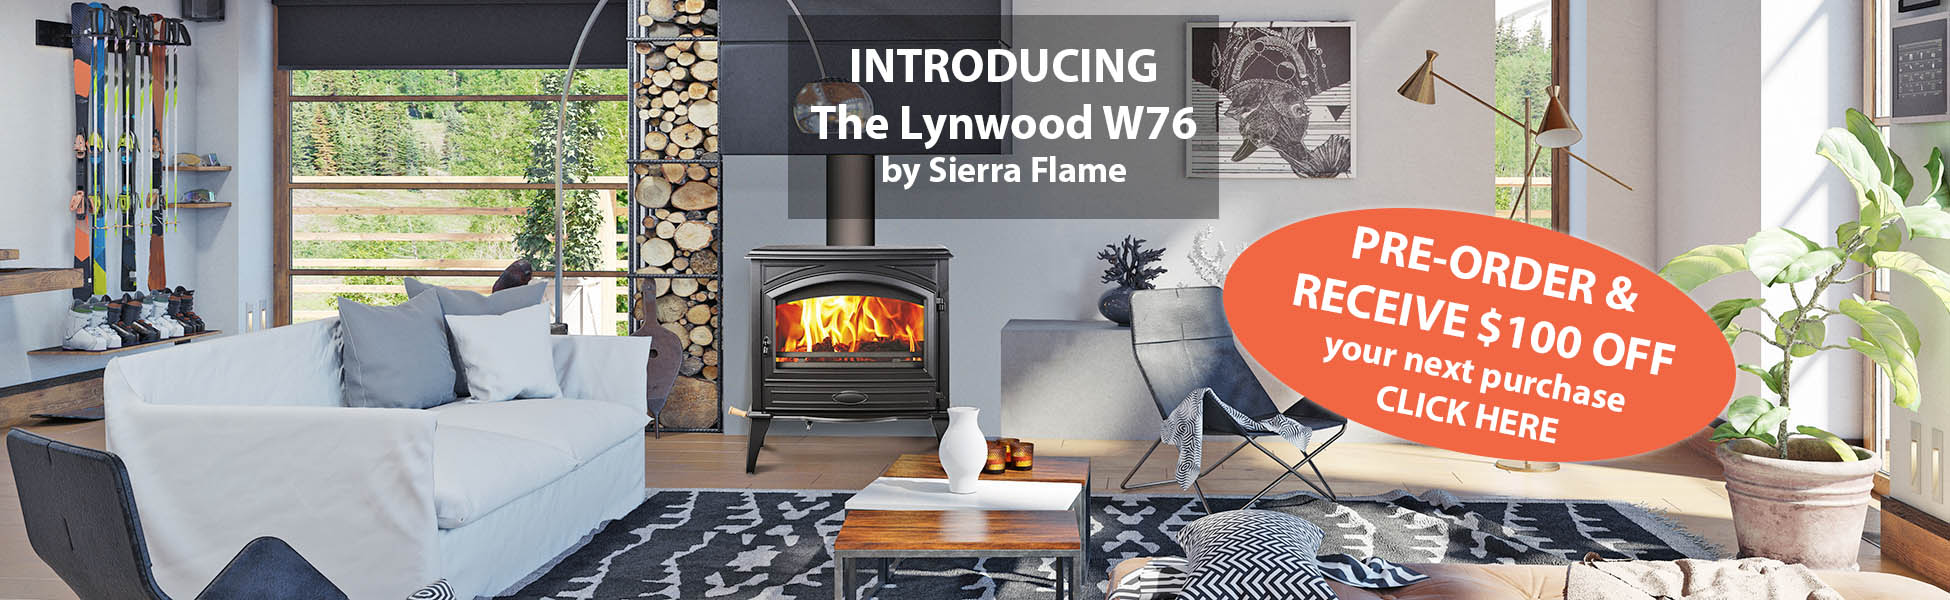 Wood stove - pre order sale